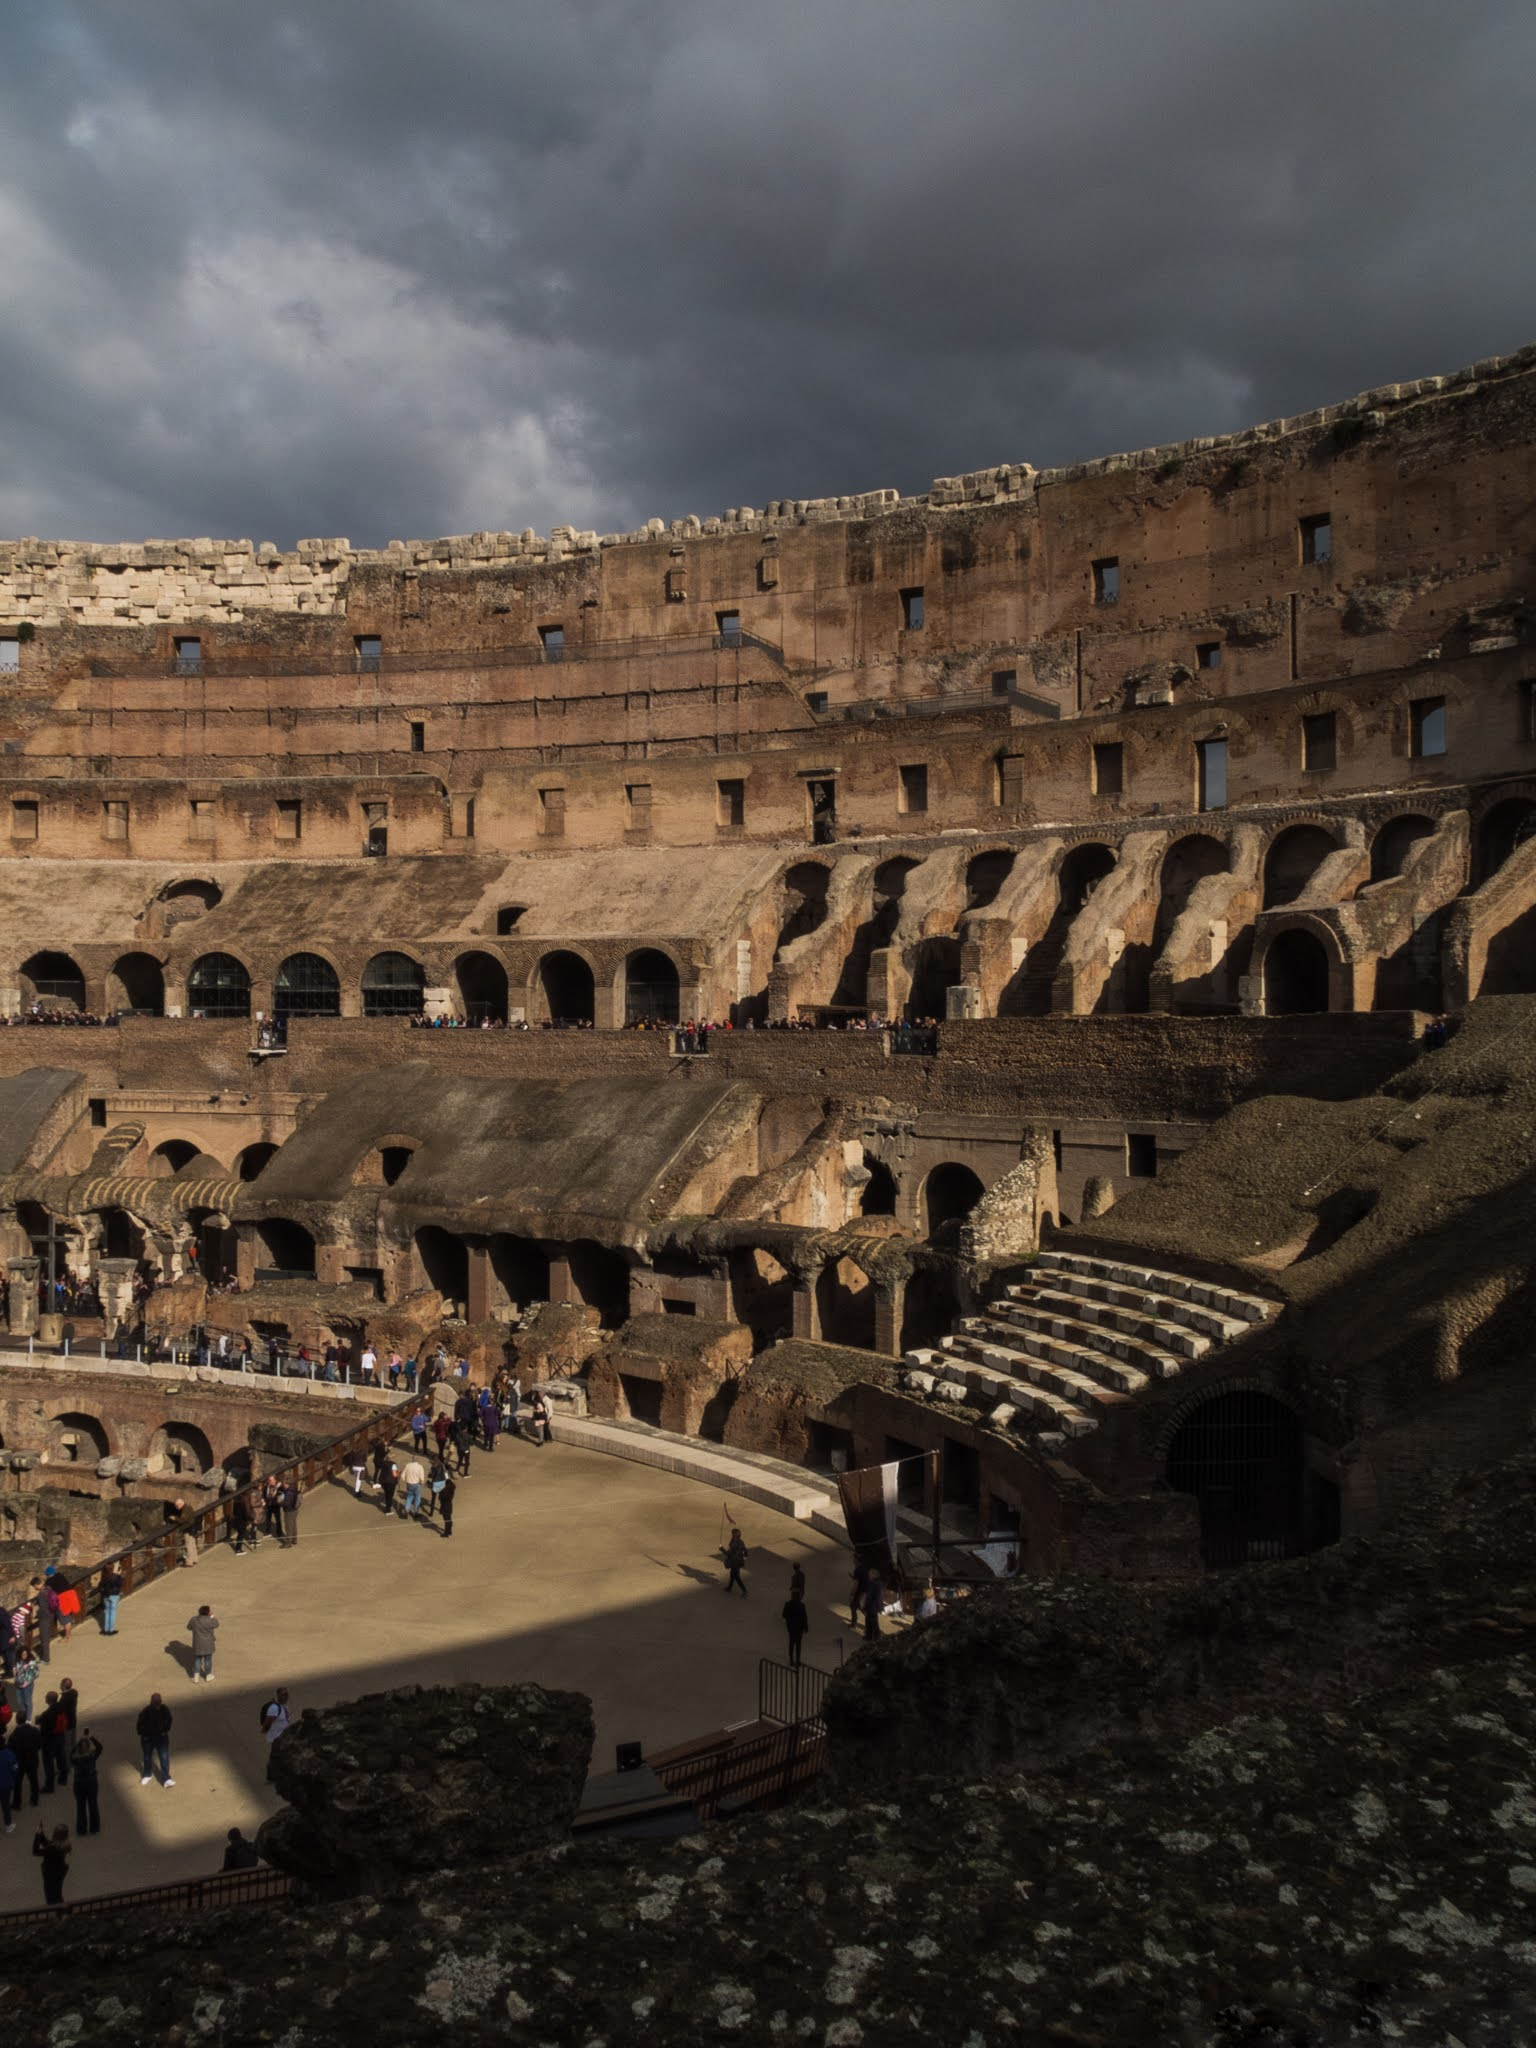 A look inside a sun-lit Colosseum arena with clouds above.